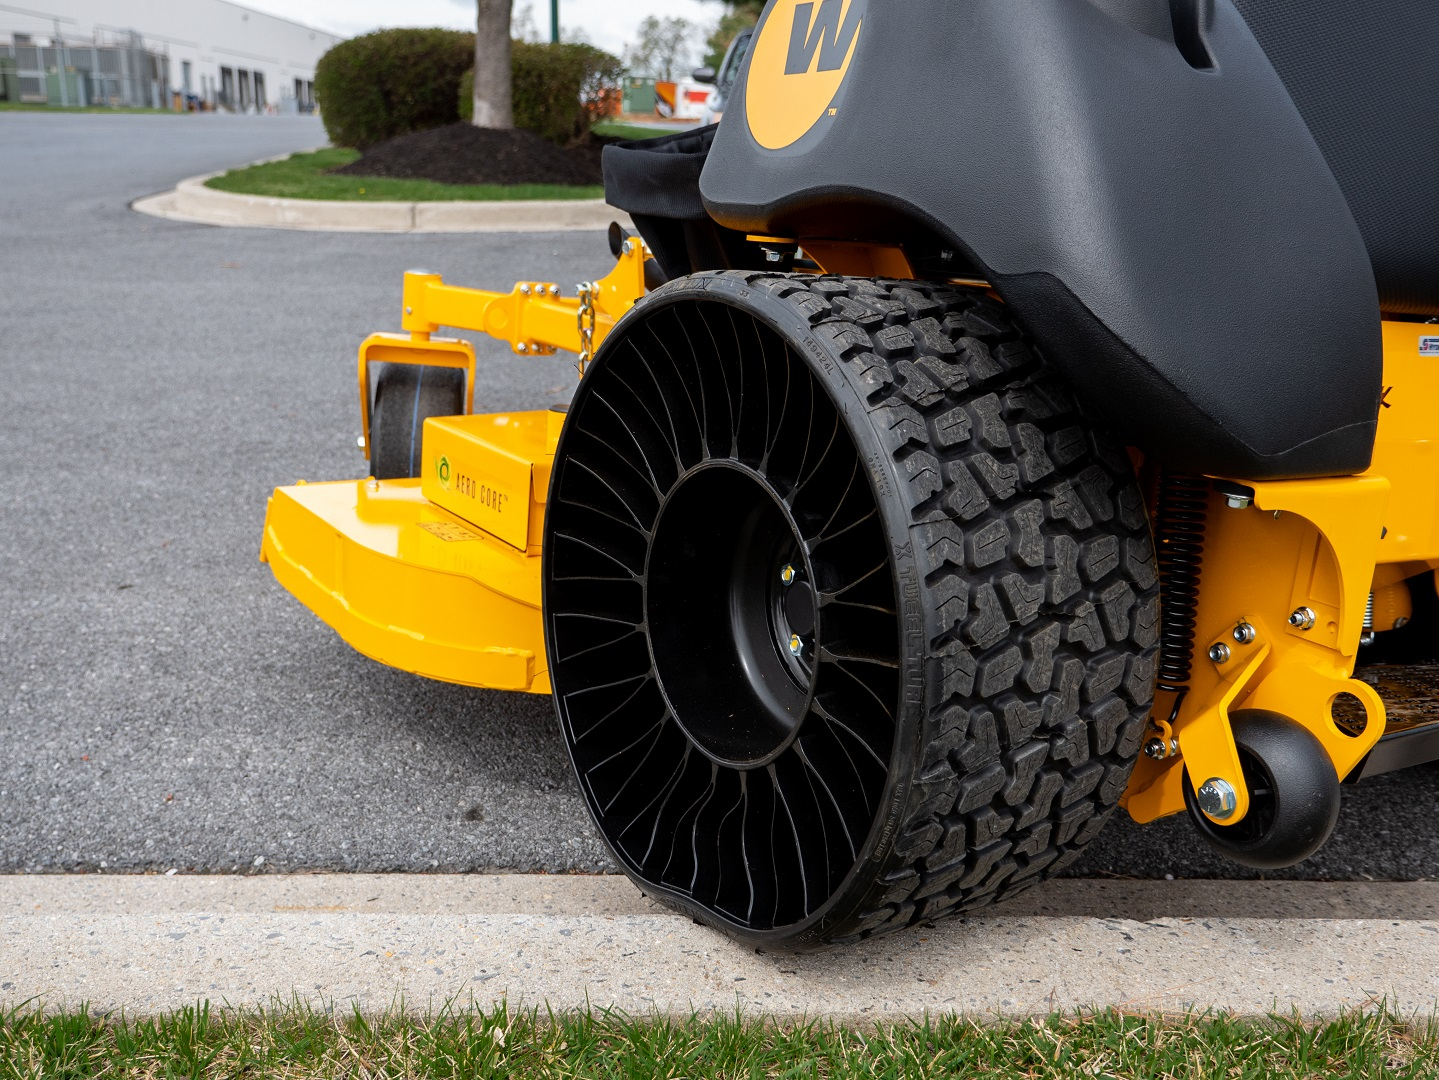 michelin tweel tire rear angle view